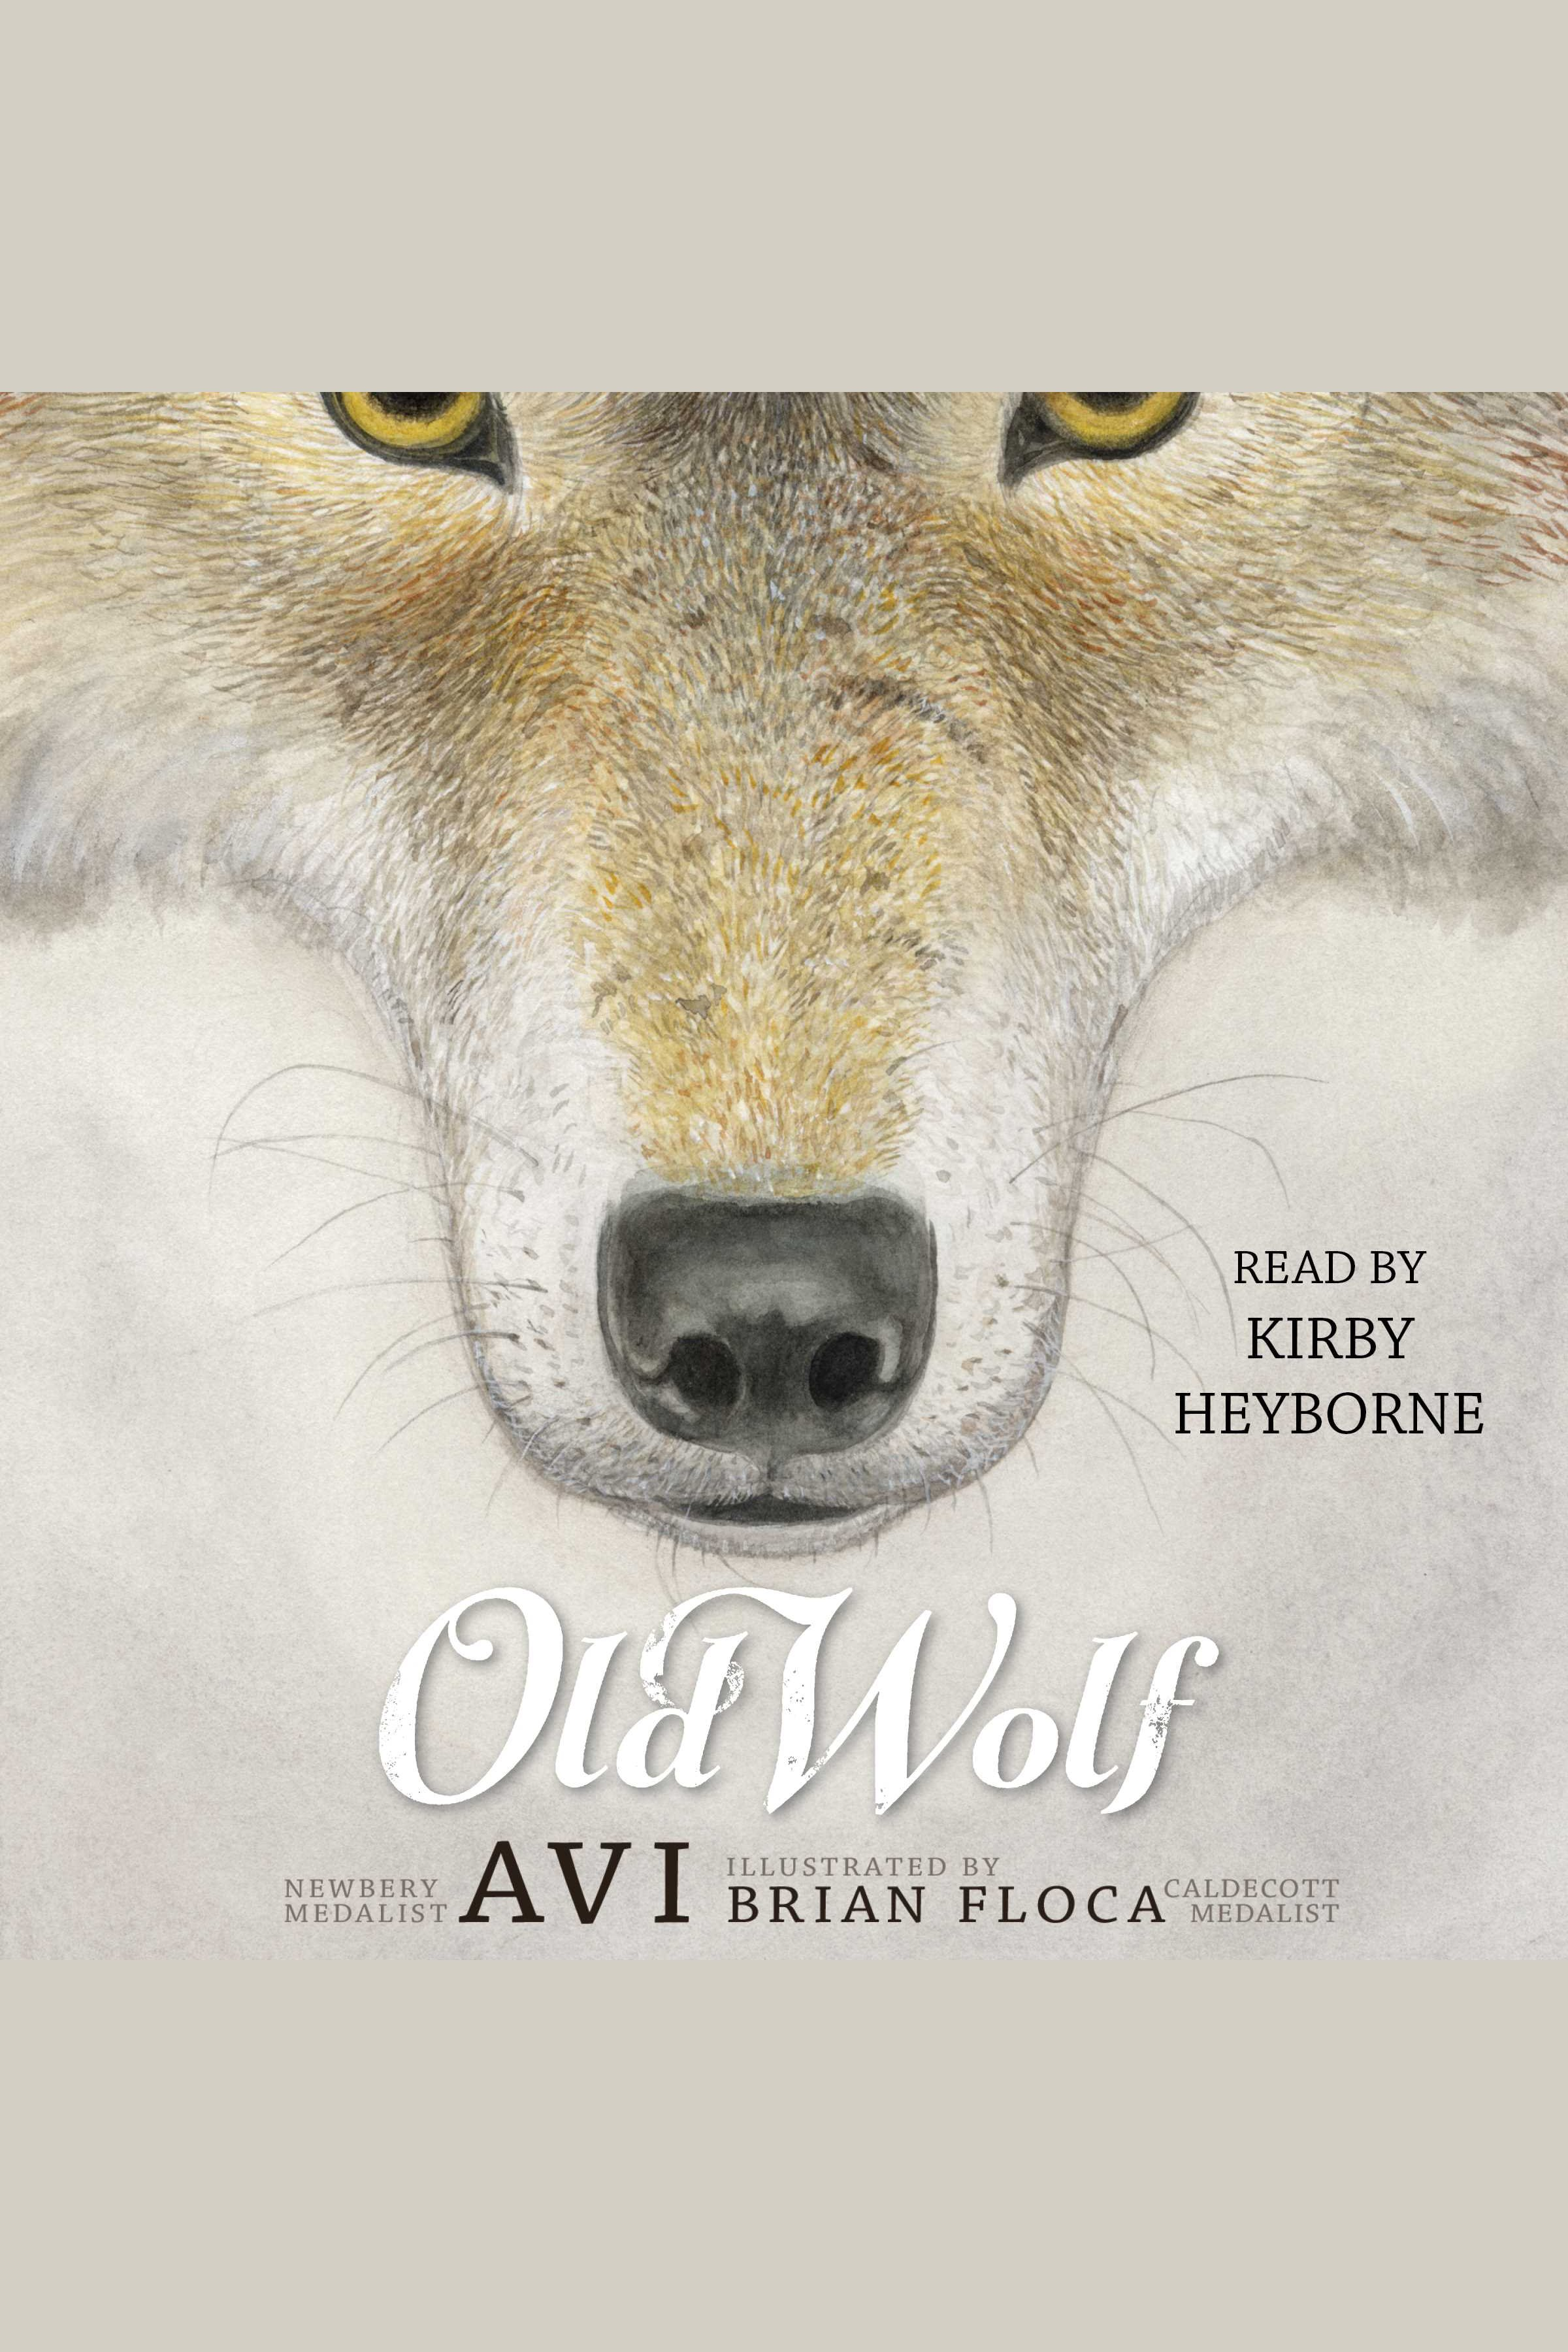 Old wolf cover image